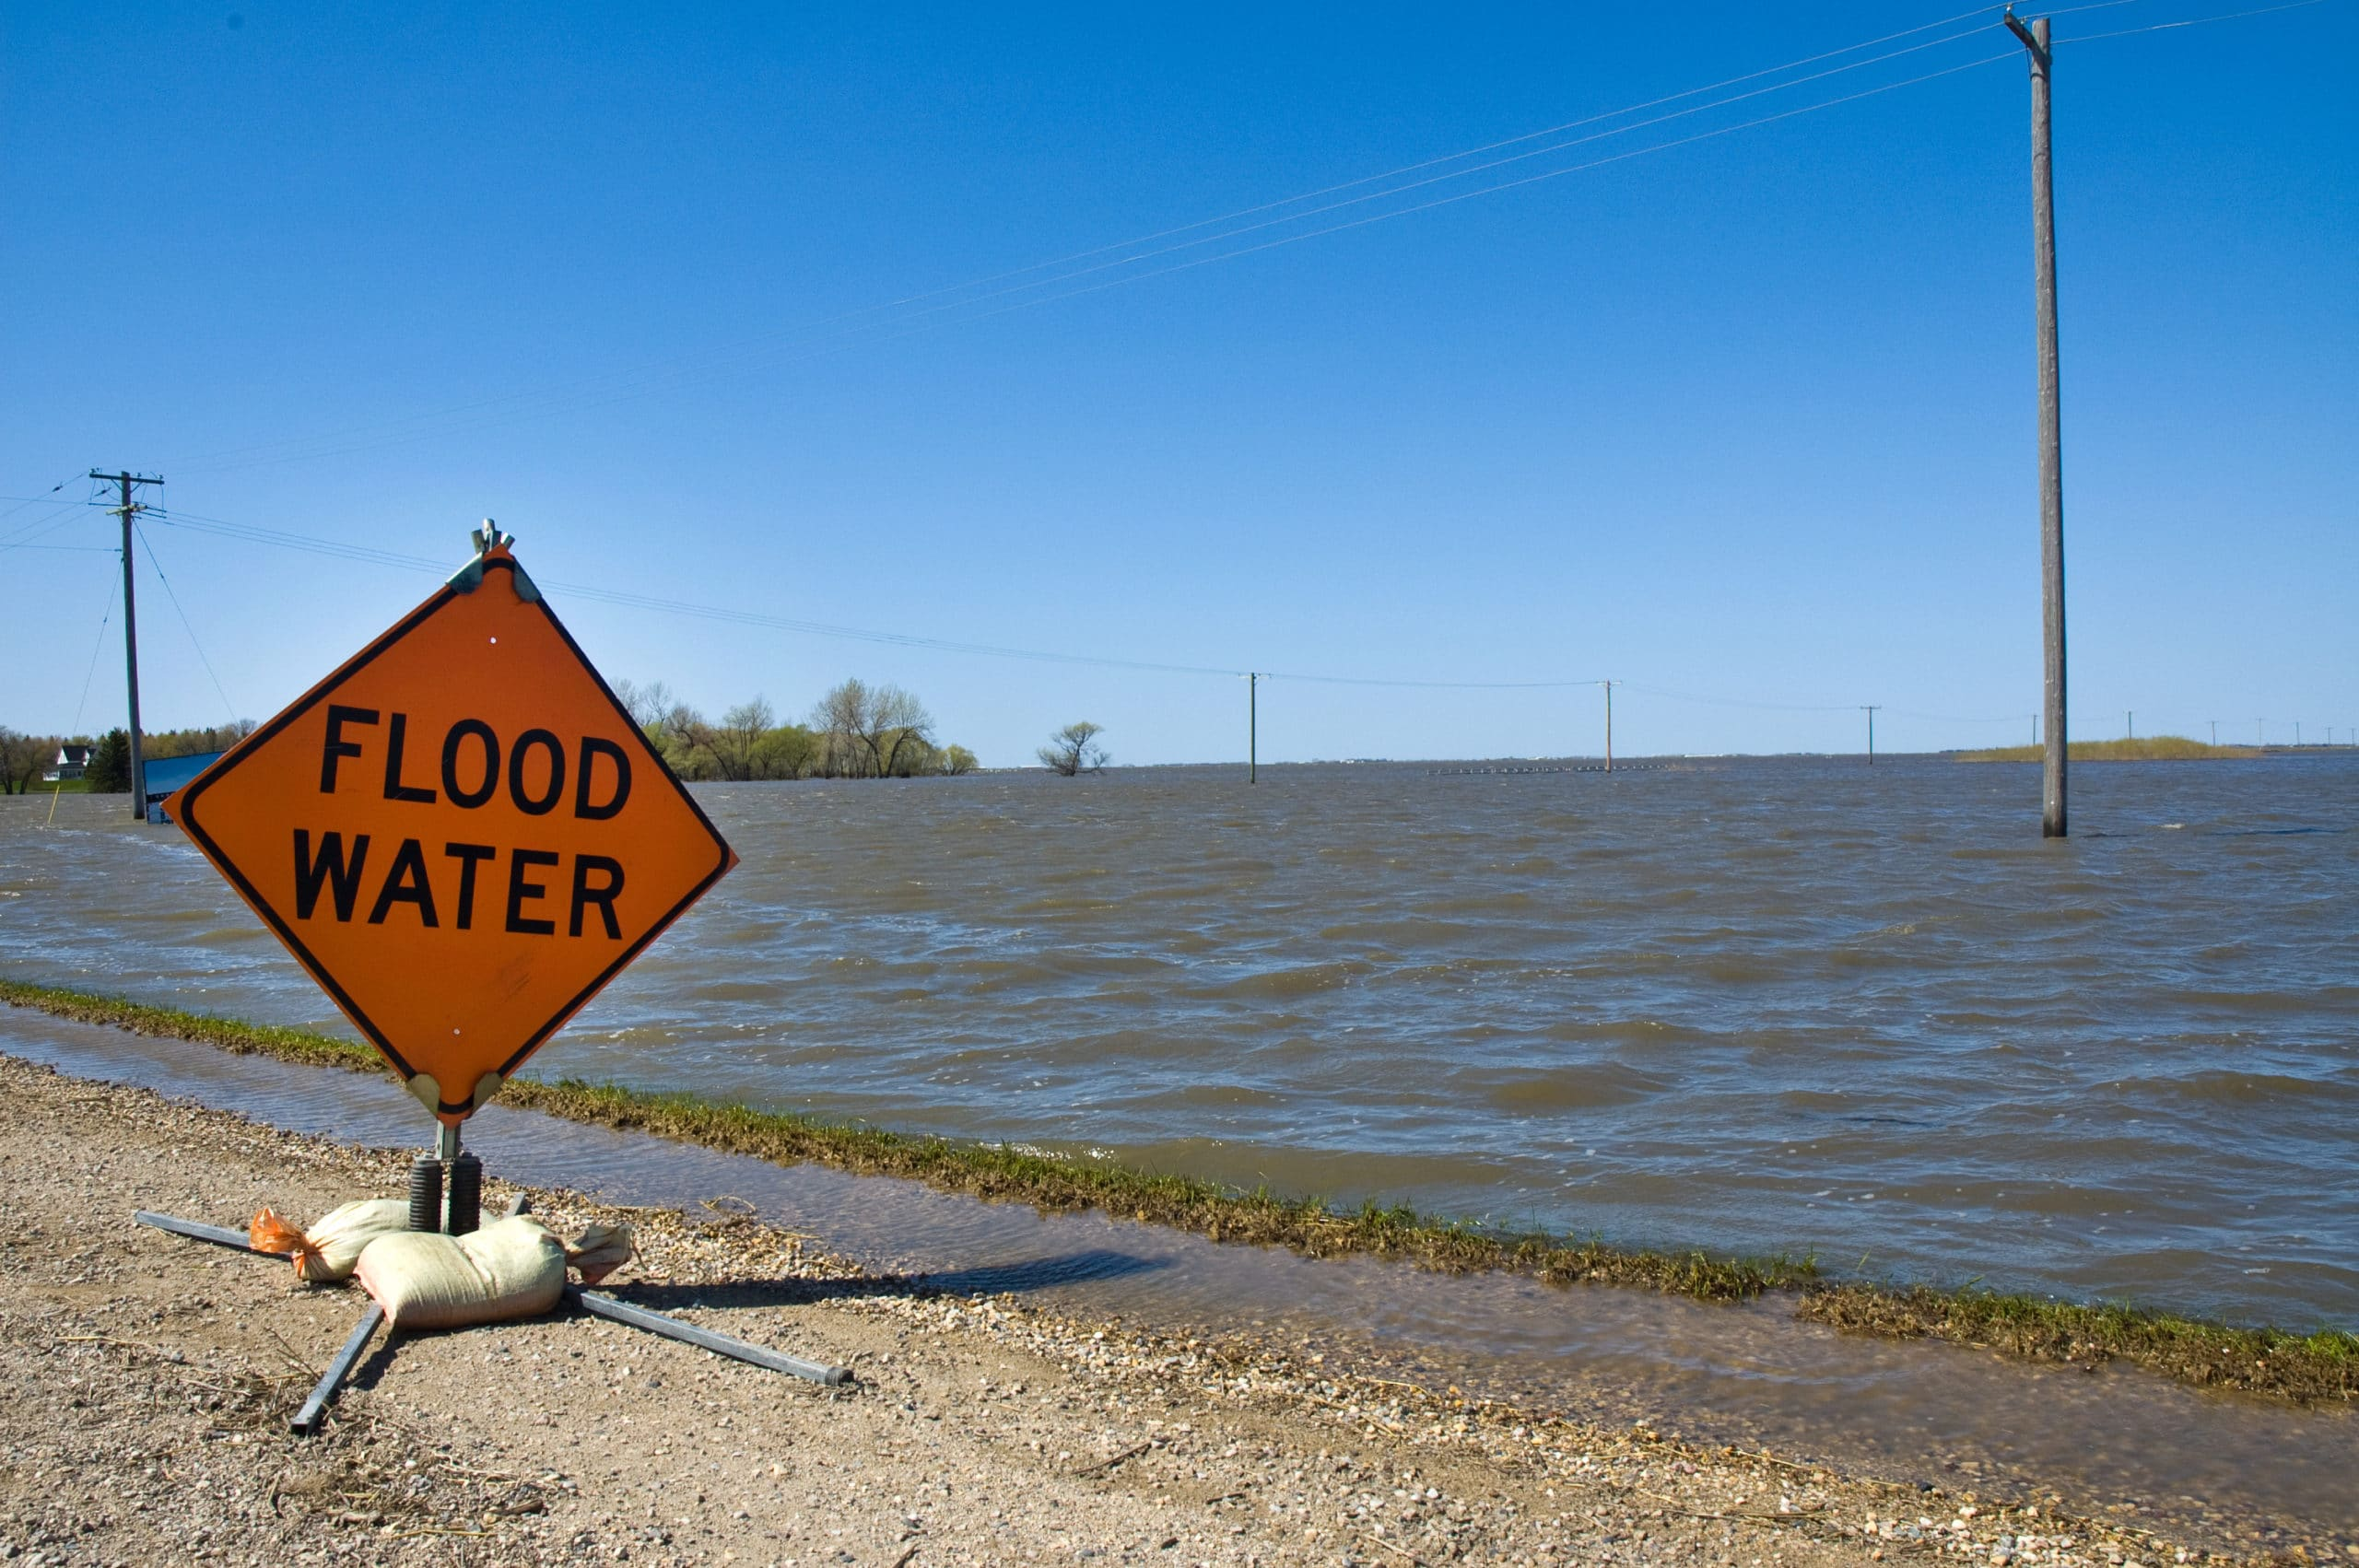 Picture of flooded field with warning sign